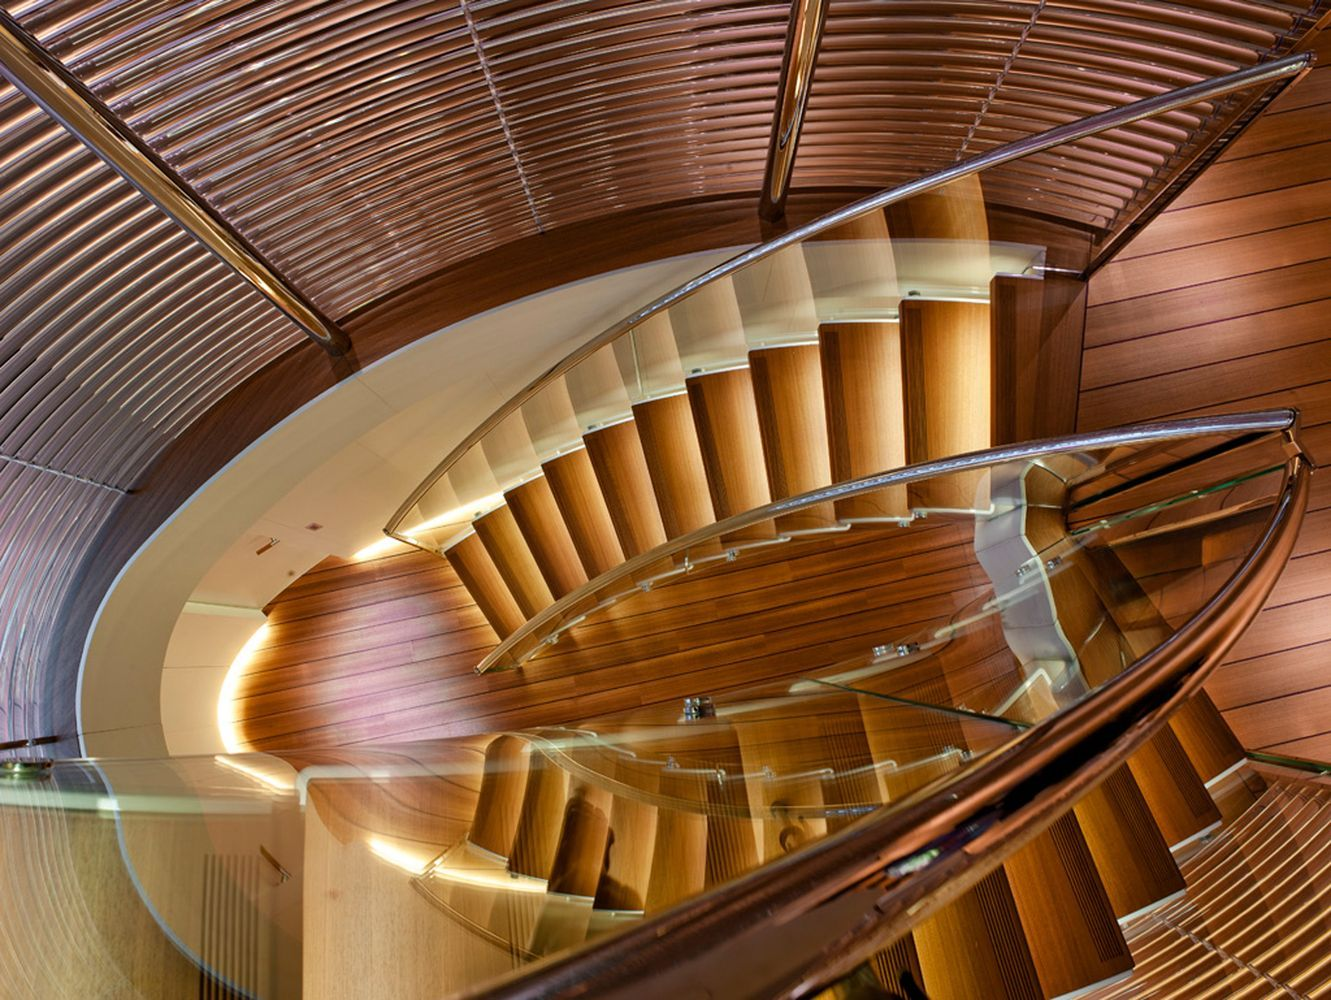 Panthalassa Yacht designed by Foster + Partners - stairs